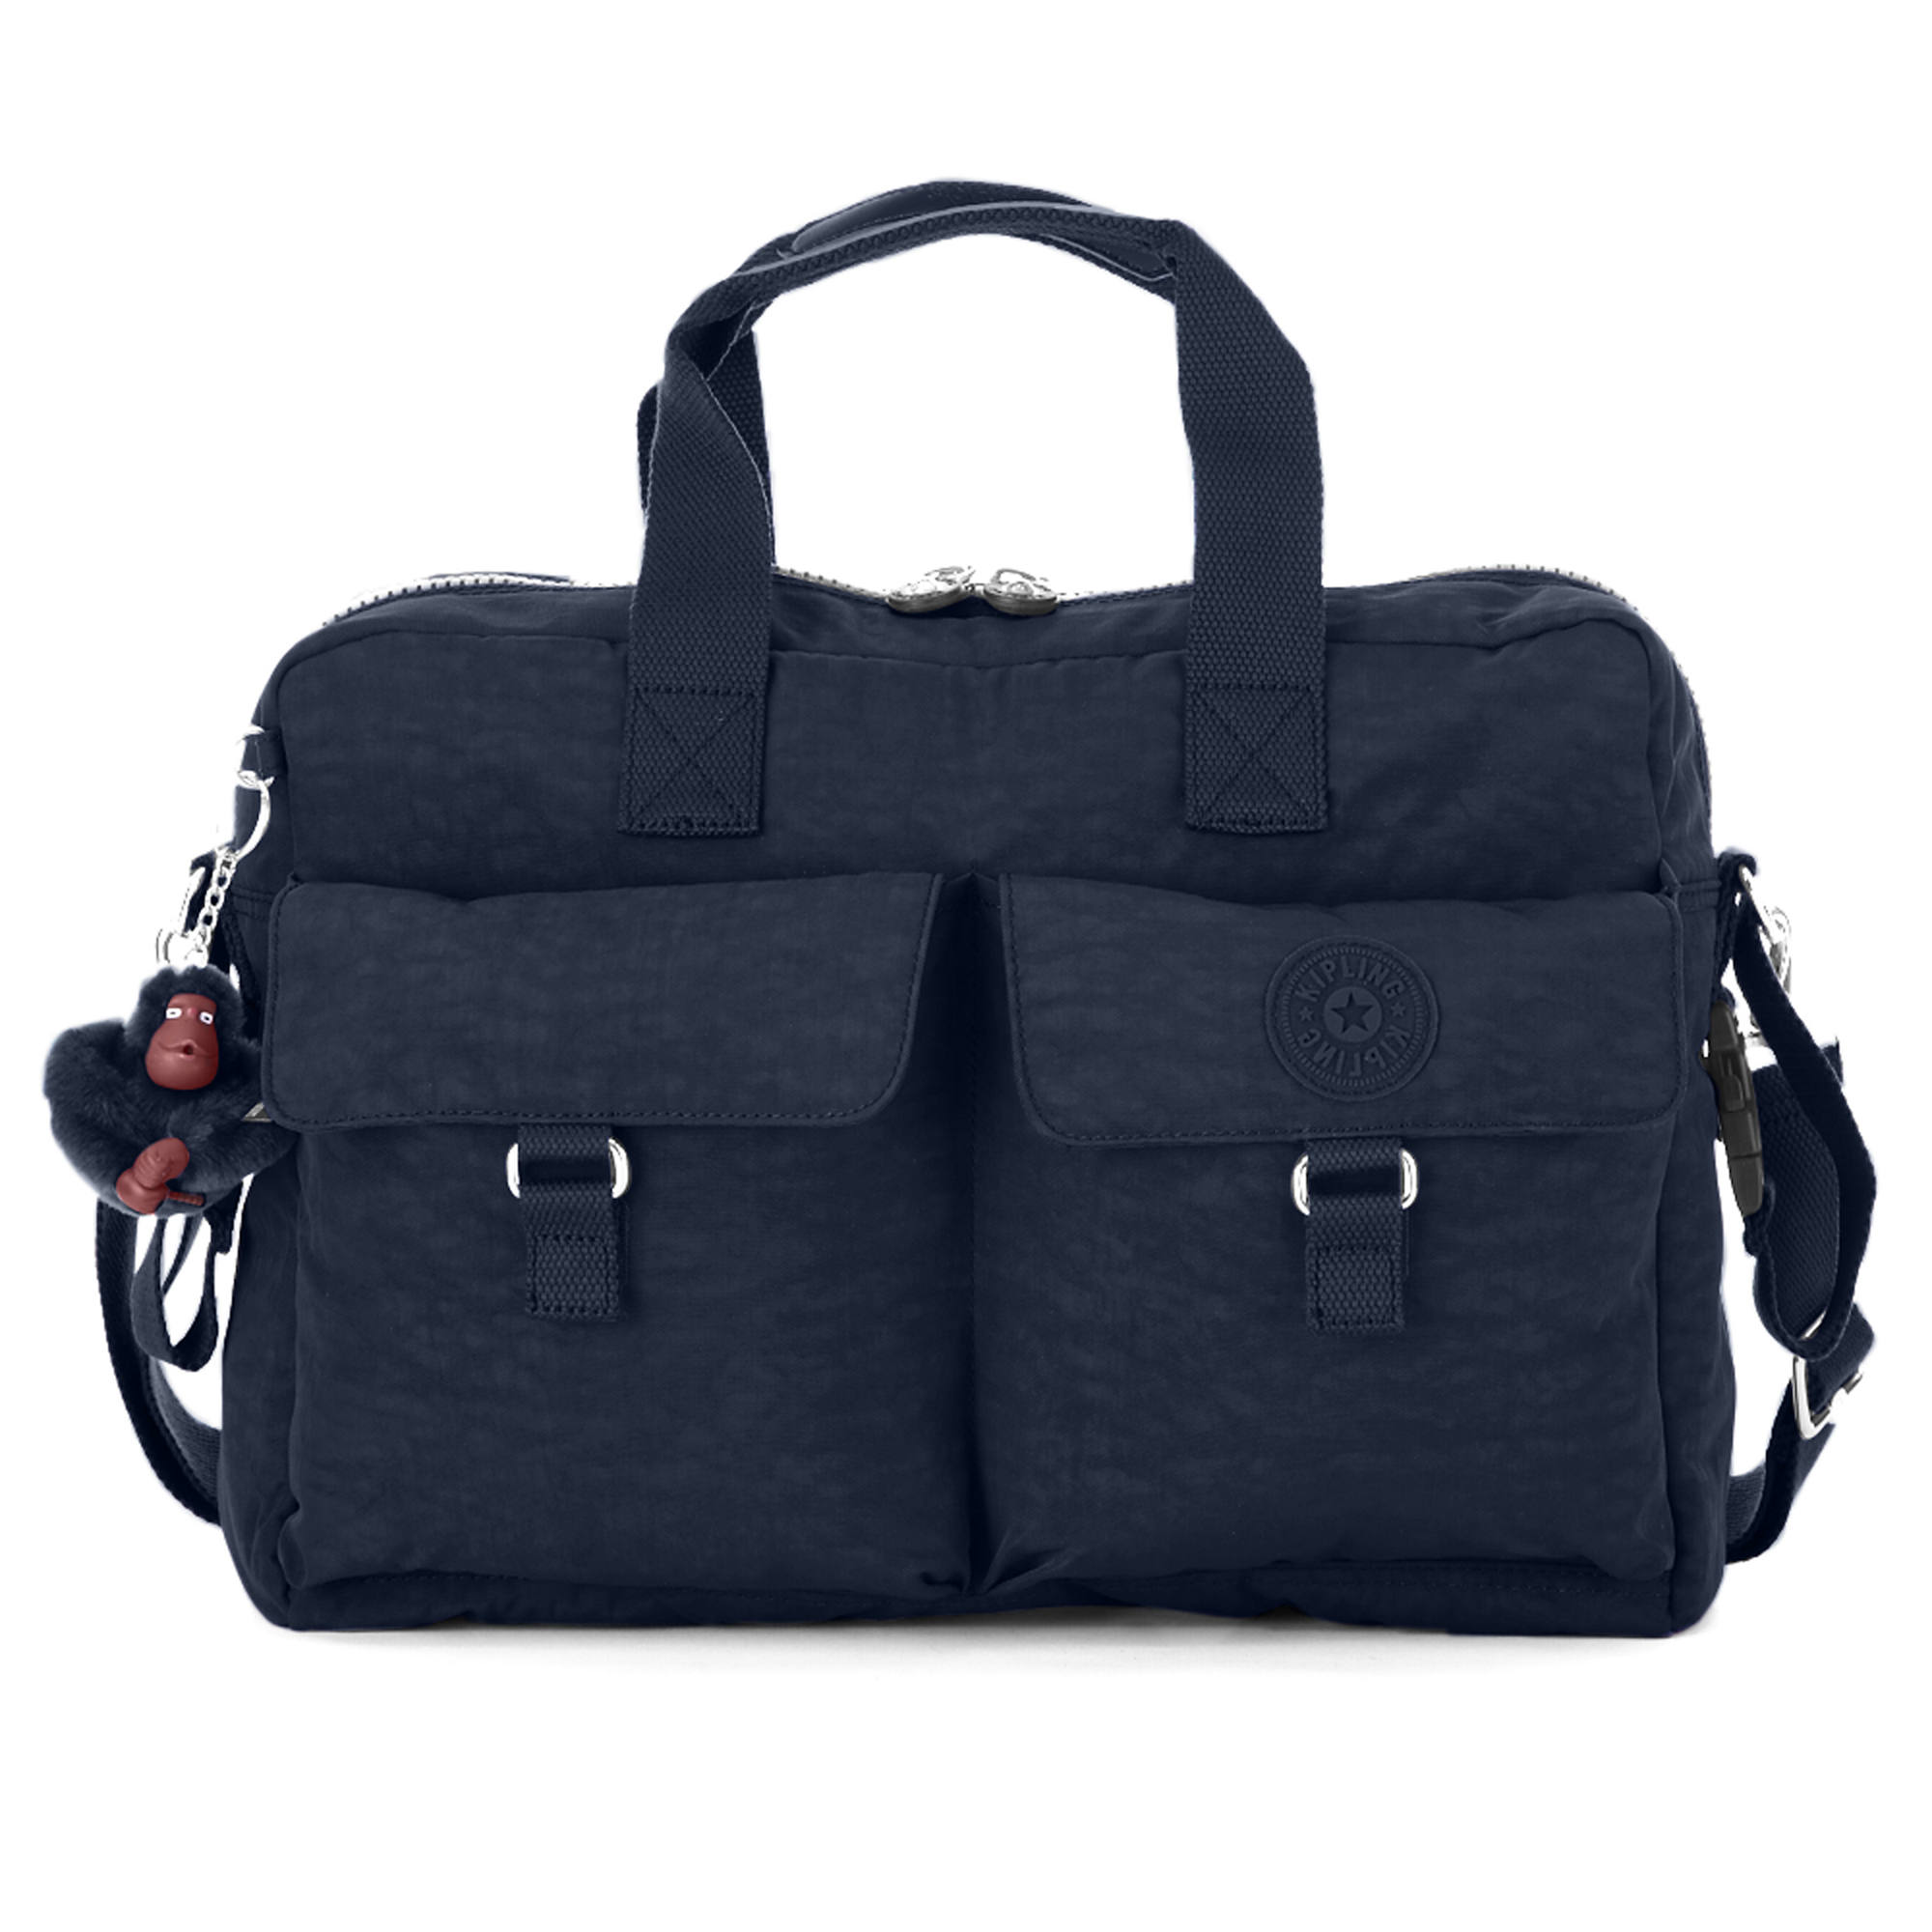 New Diaper Bag True Blue Large